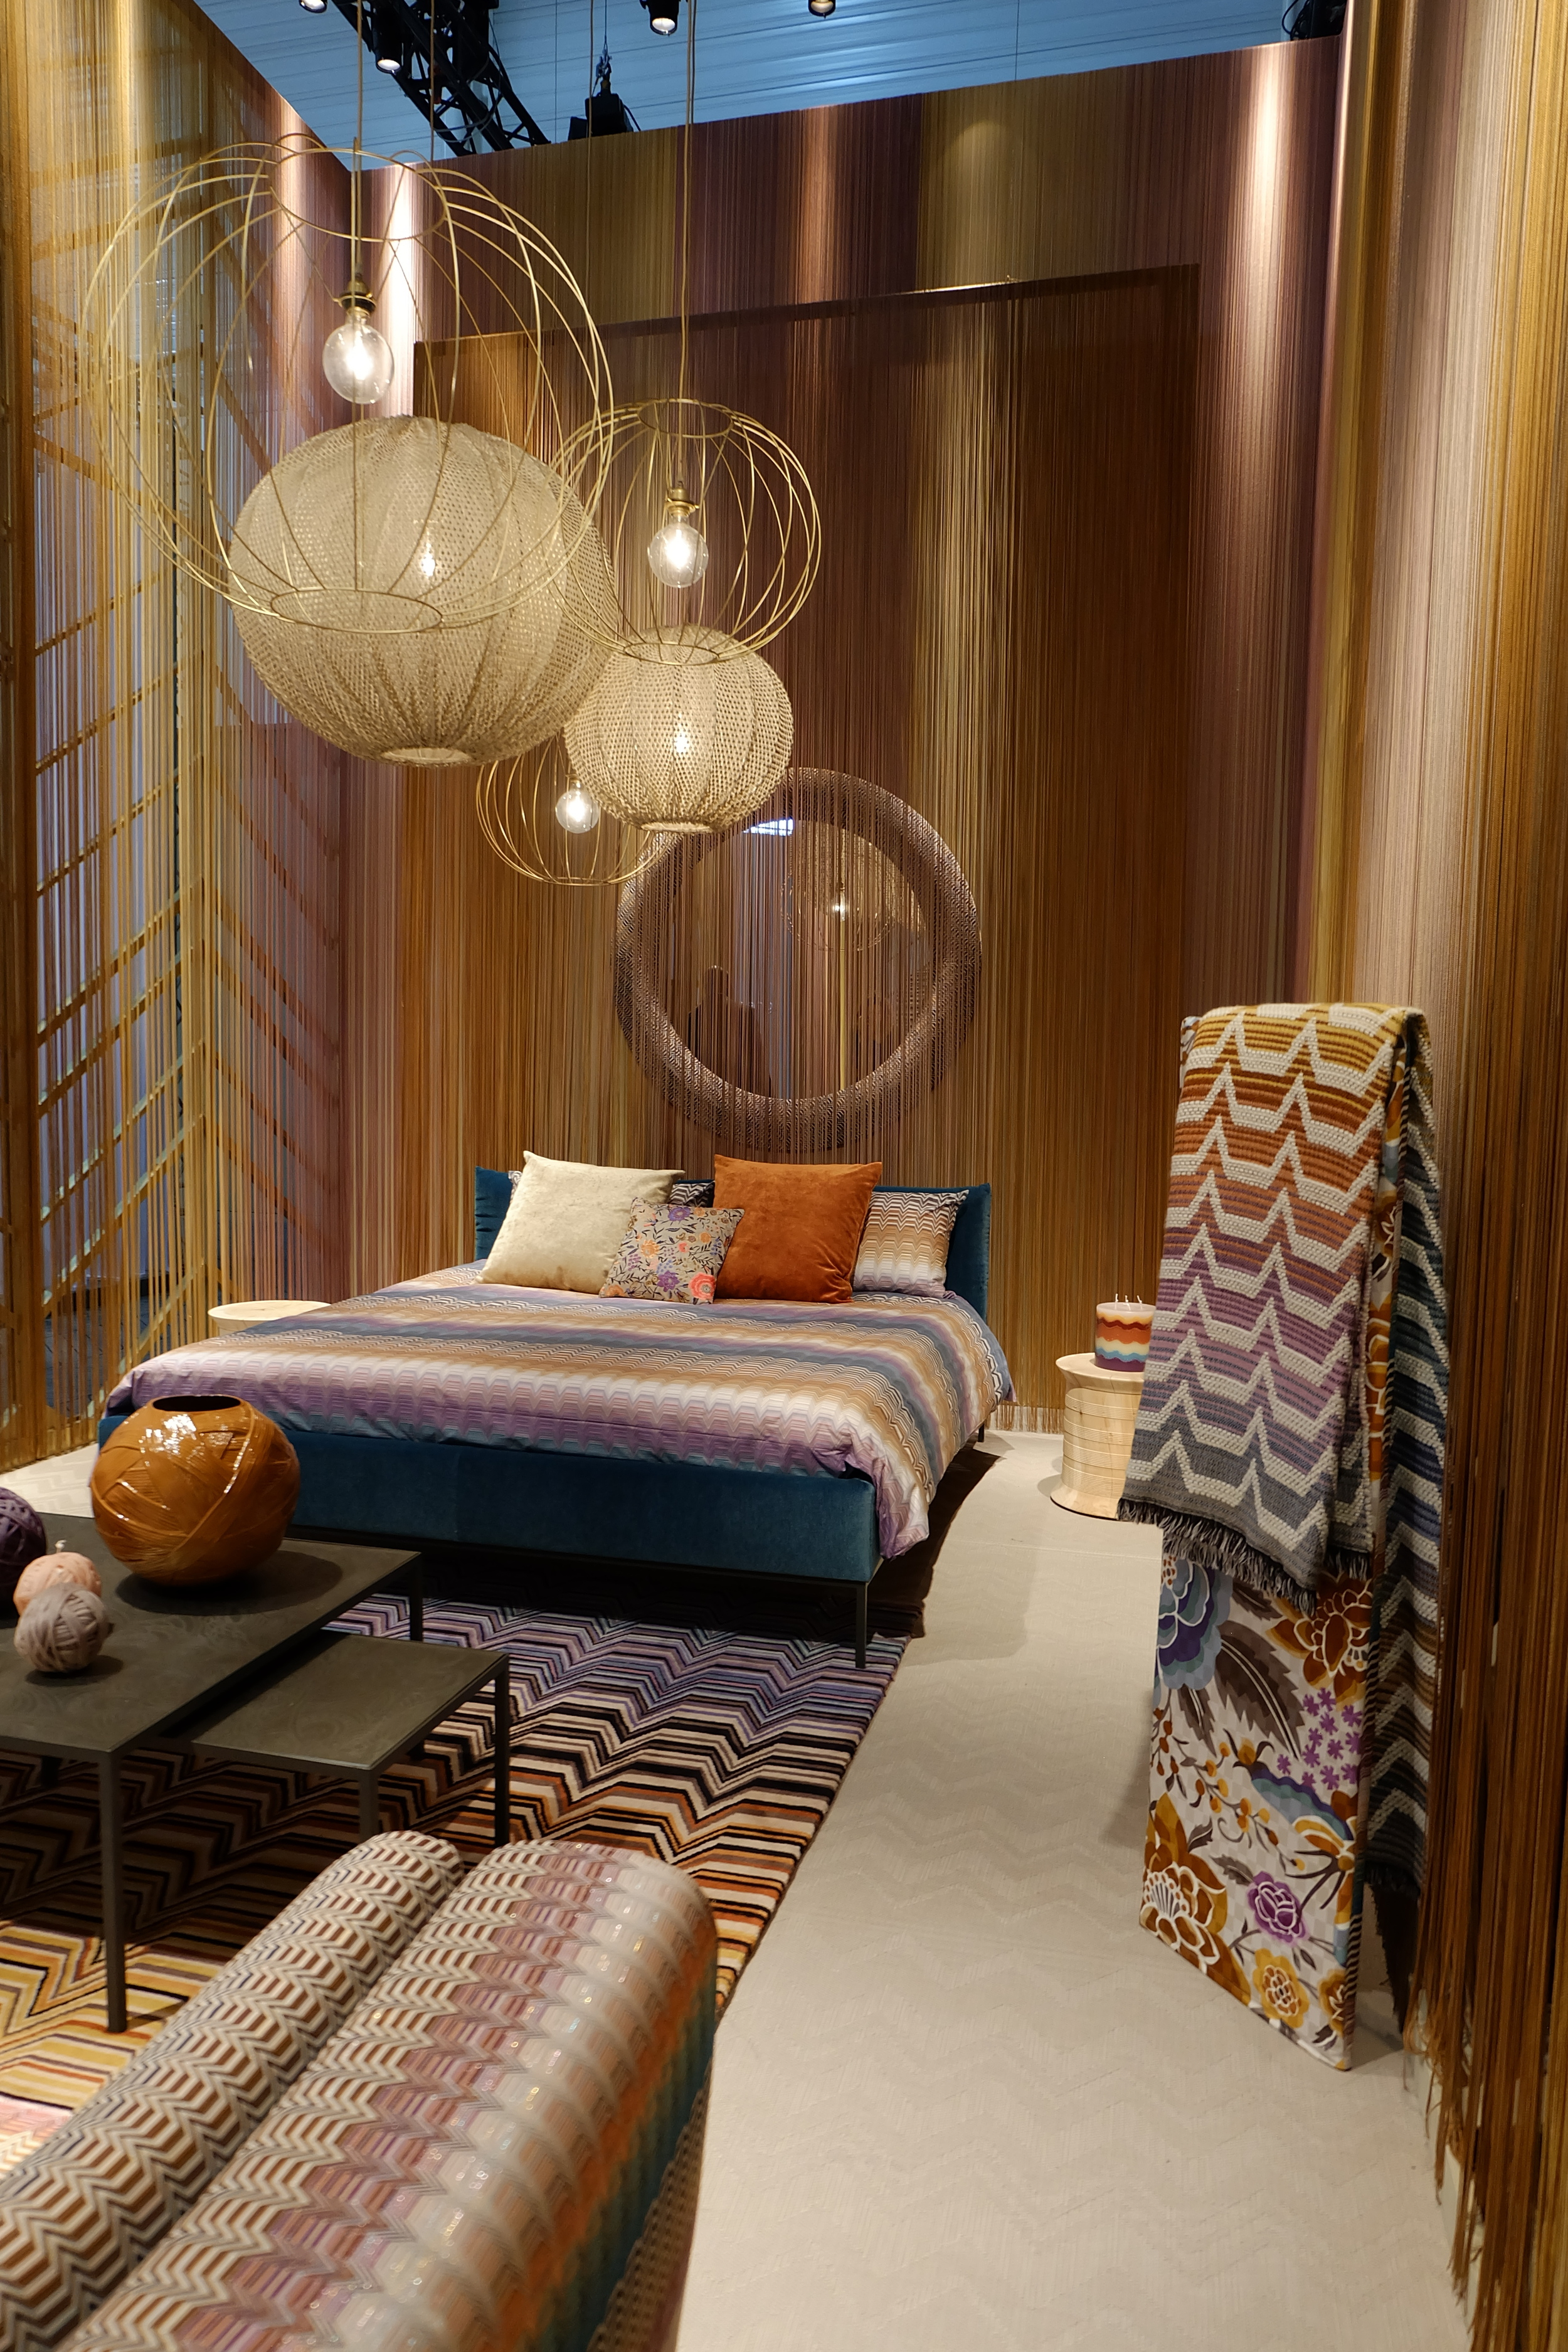 Maison & Objet 2016 Highlights - Missoni stand - warm earthy tones | MSH Agency